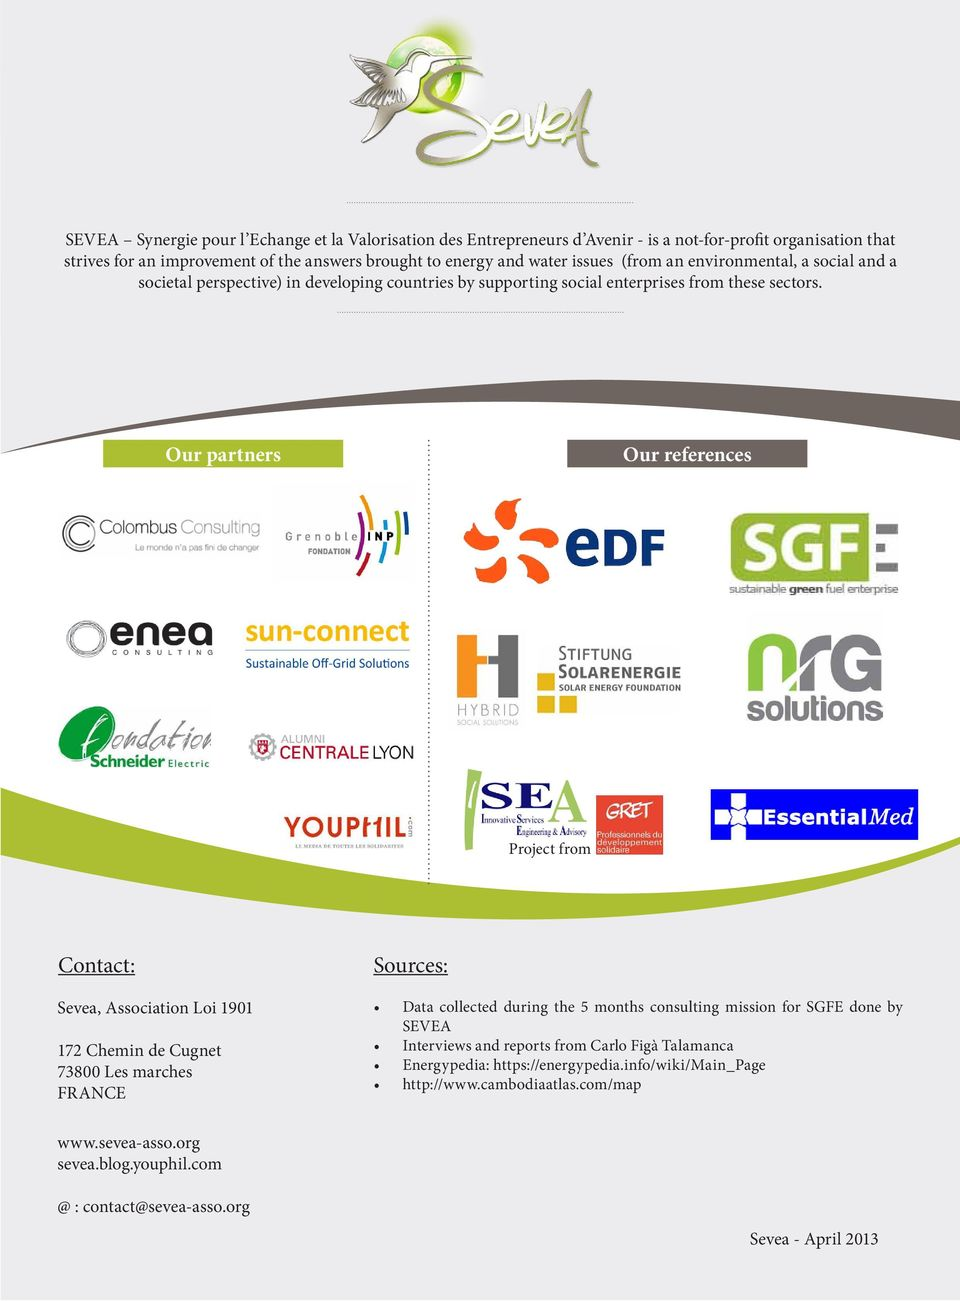 Our partners Our references Project from Contact: Sevea, Association Loi 1901 172 Chemin de Cugnet 73800 Les marches FRANCE Sources: Data collected during the 5 months consulting mission for